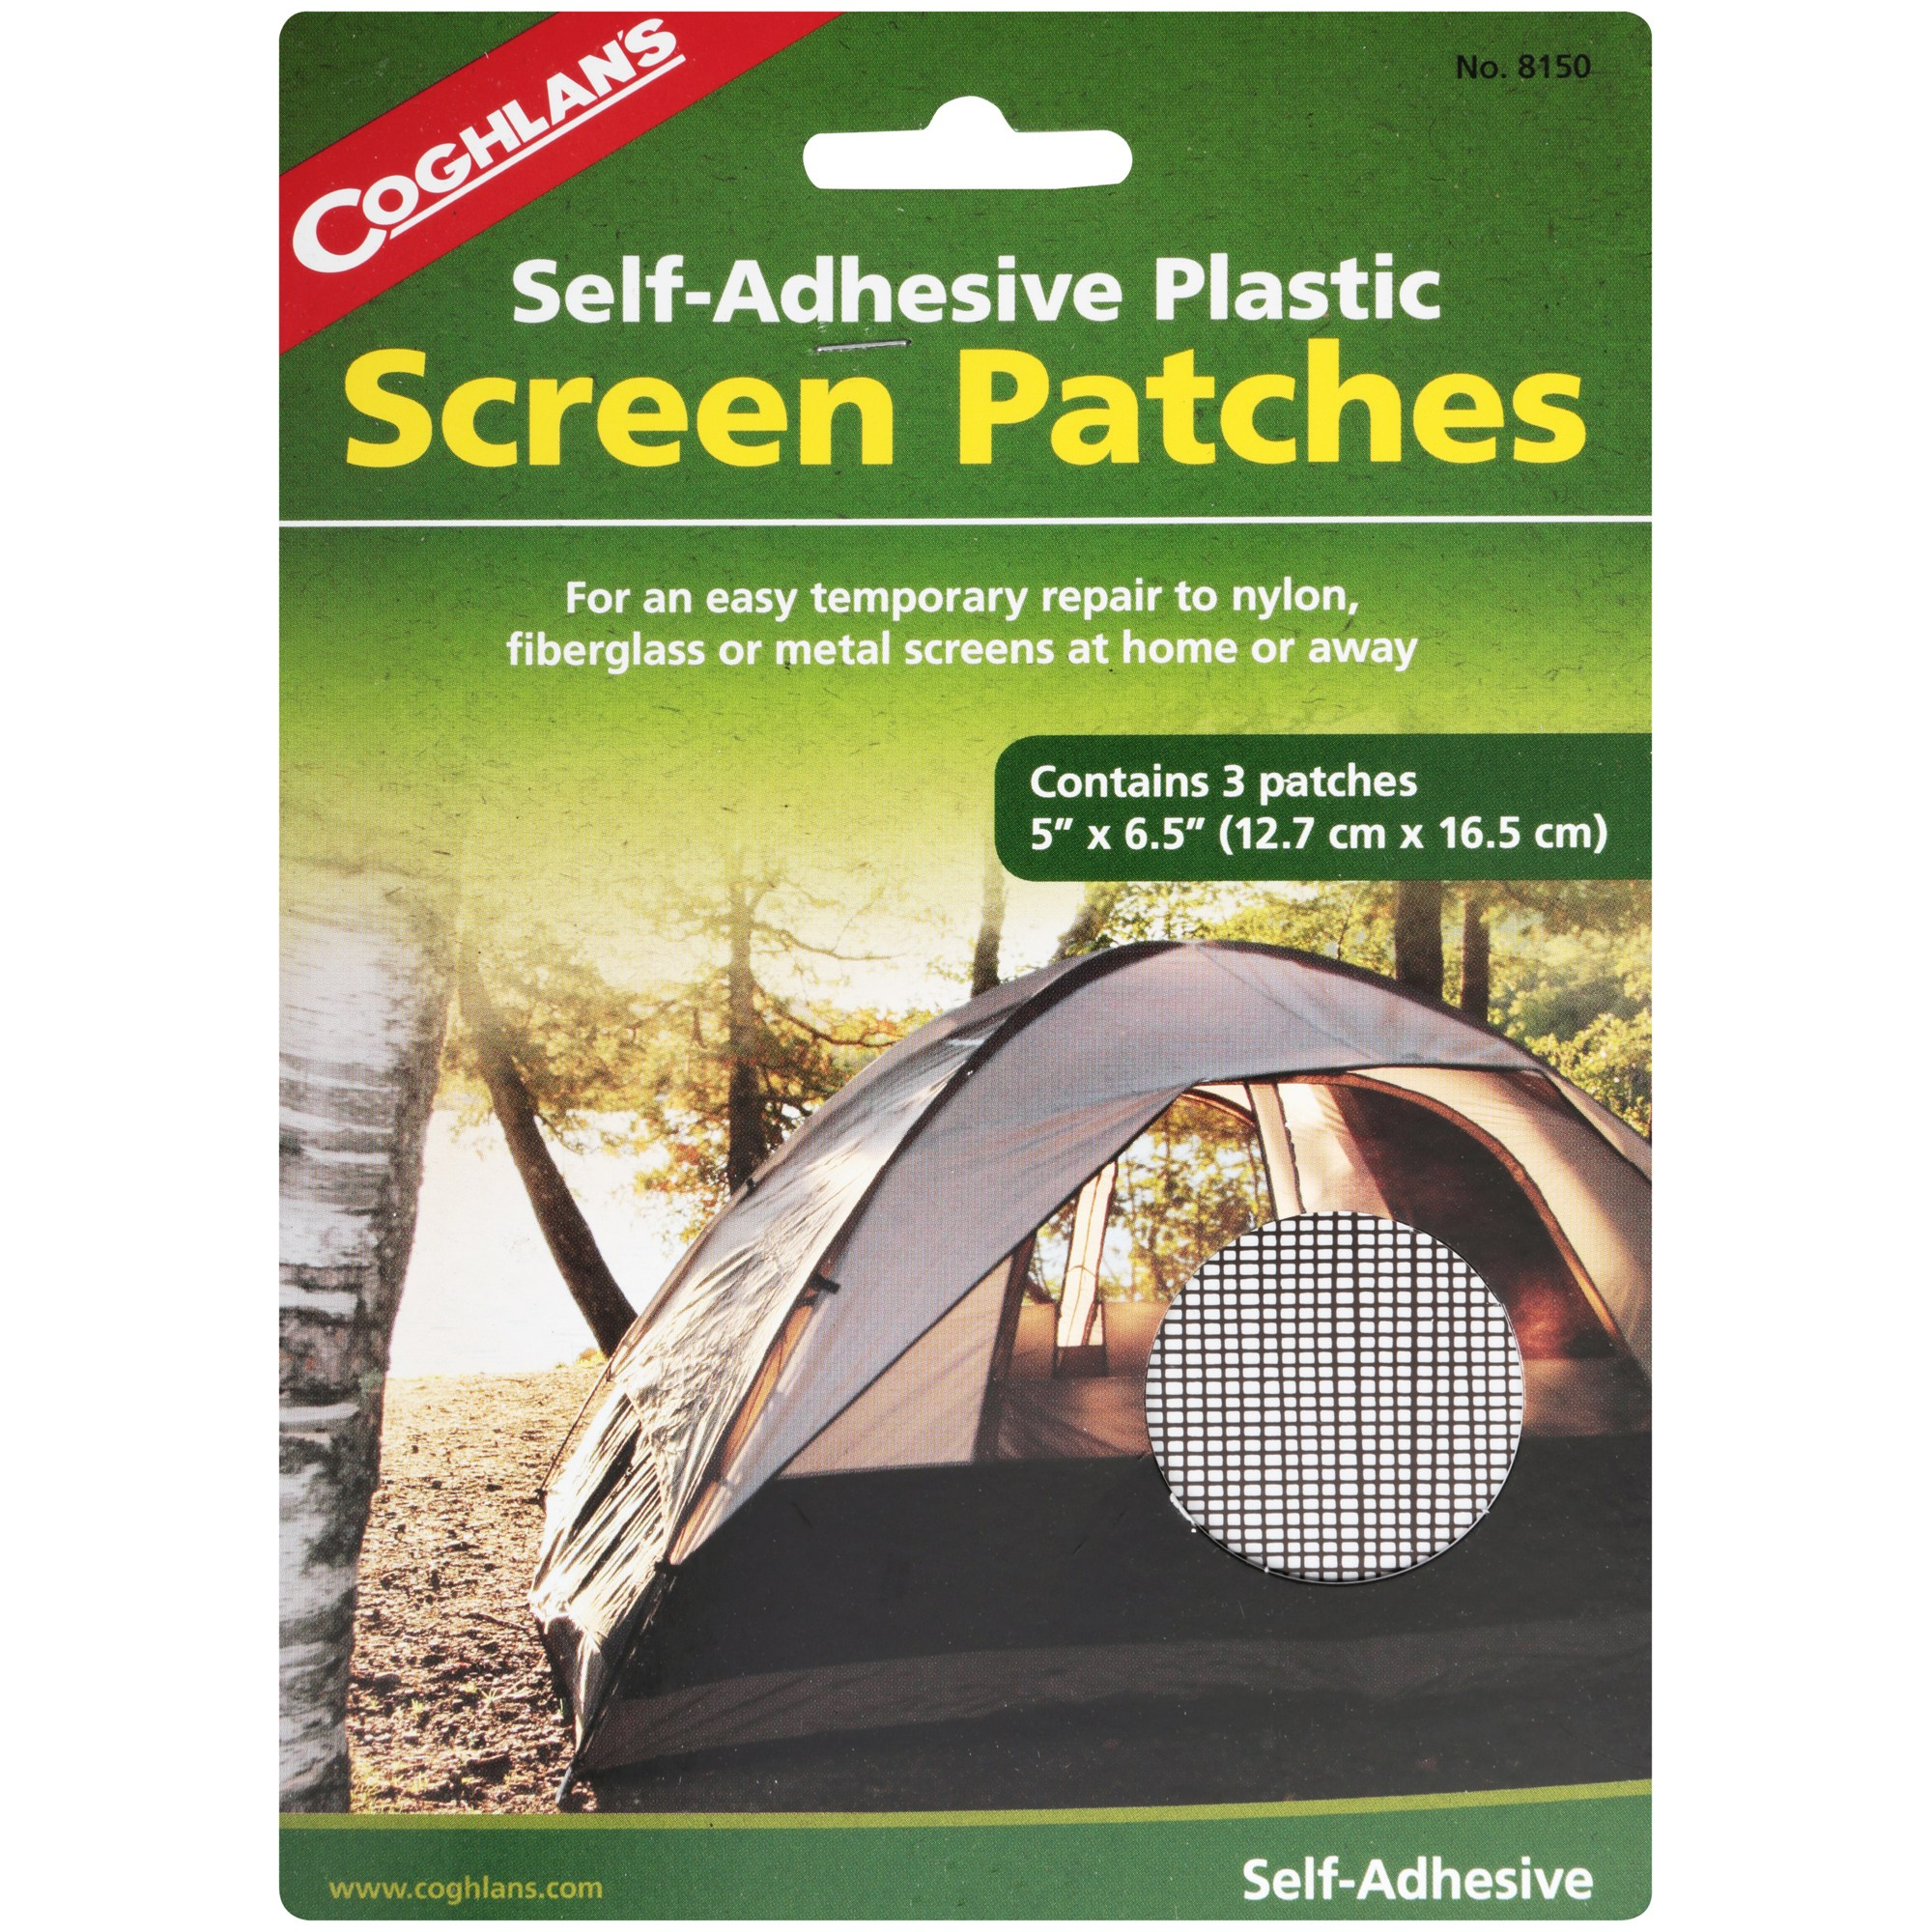 Coghlan's Self-Adhesive Plastic Screen Patches 3 ct Pack